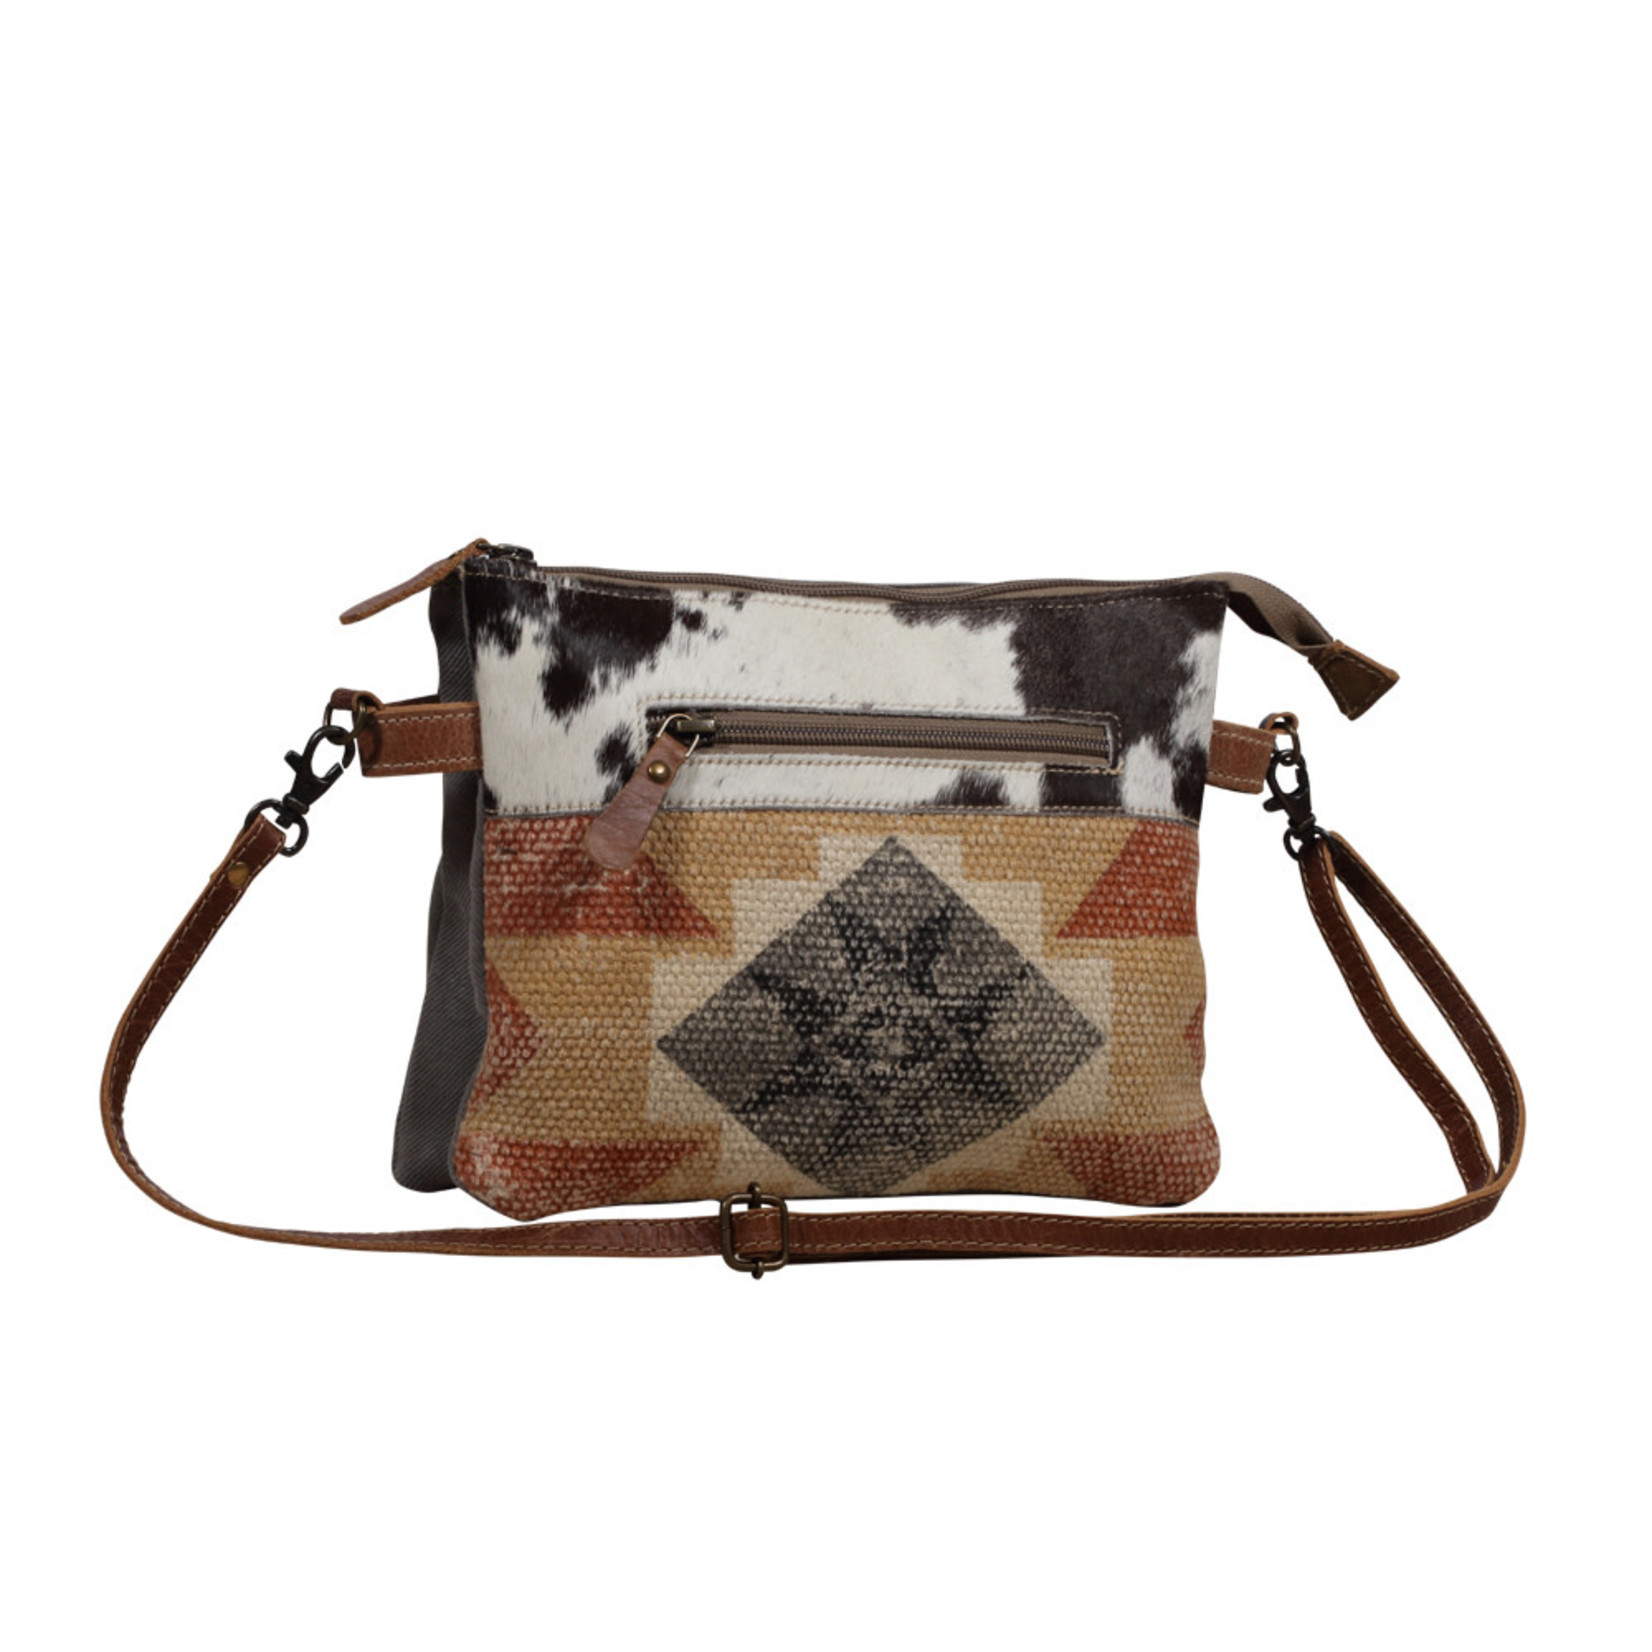 Myra Bags S-2056 Smurfy Small & Crossbody Bag